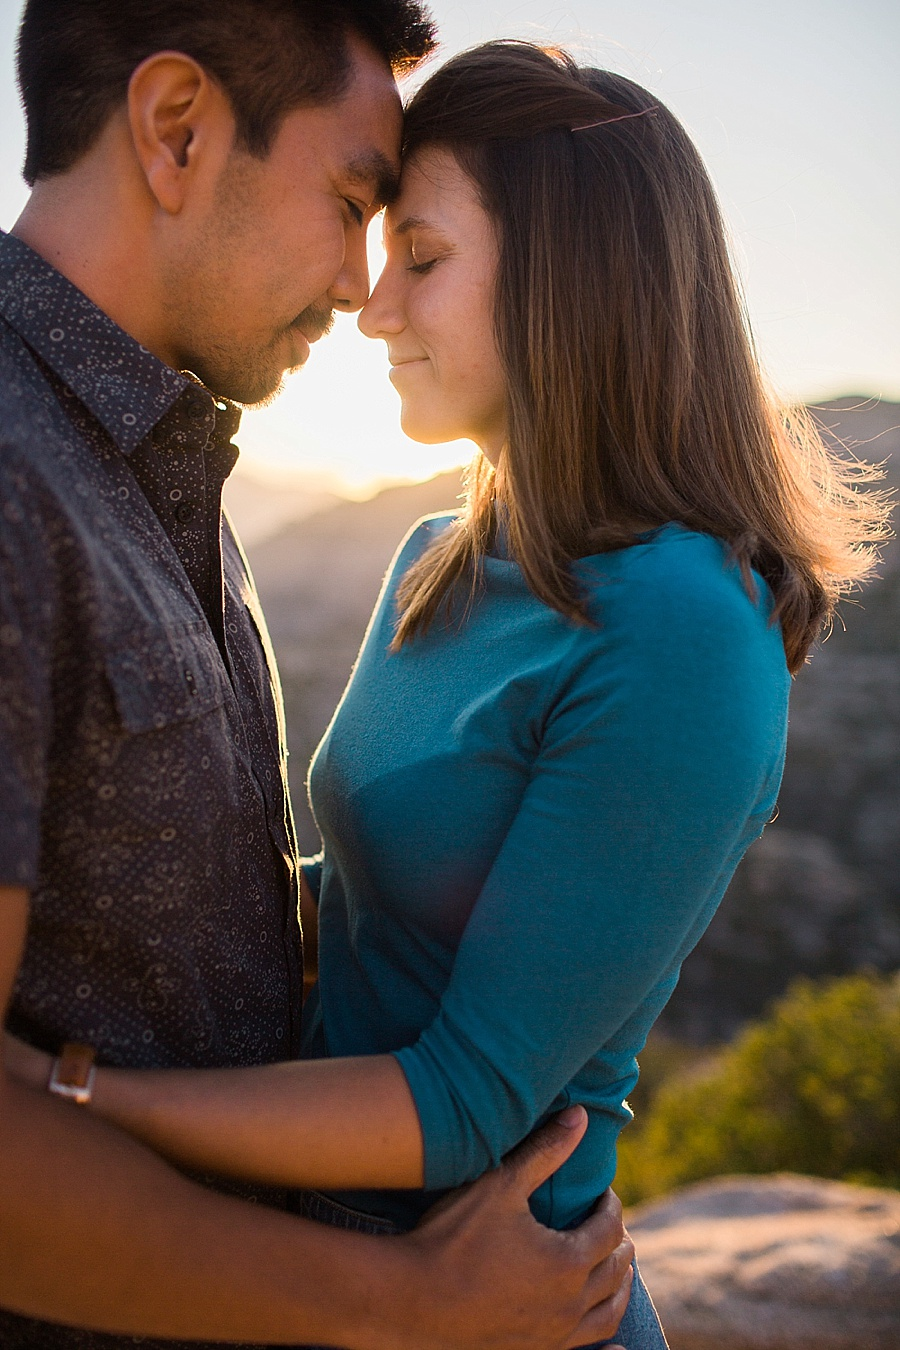 JR_Magat_Photography_Arizona_Engagement_Session_0019.jpg